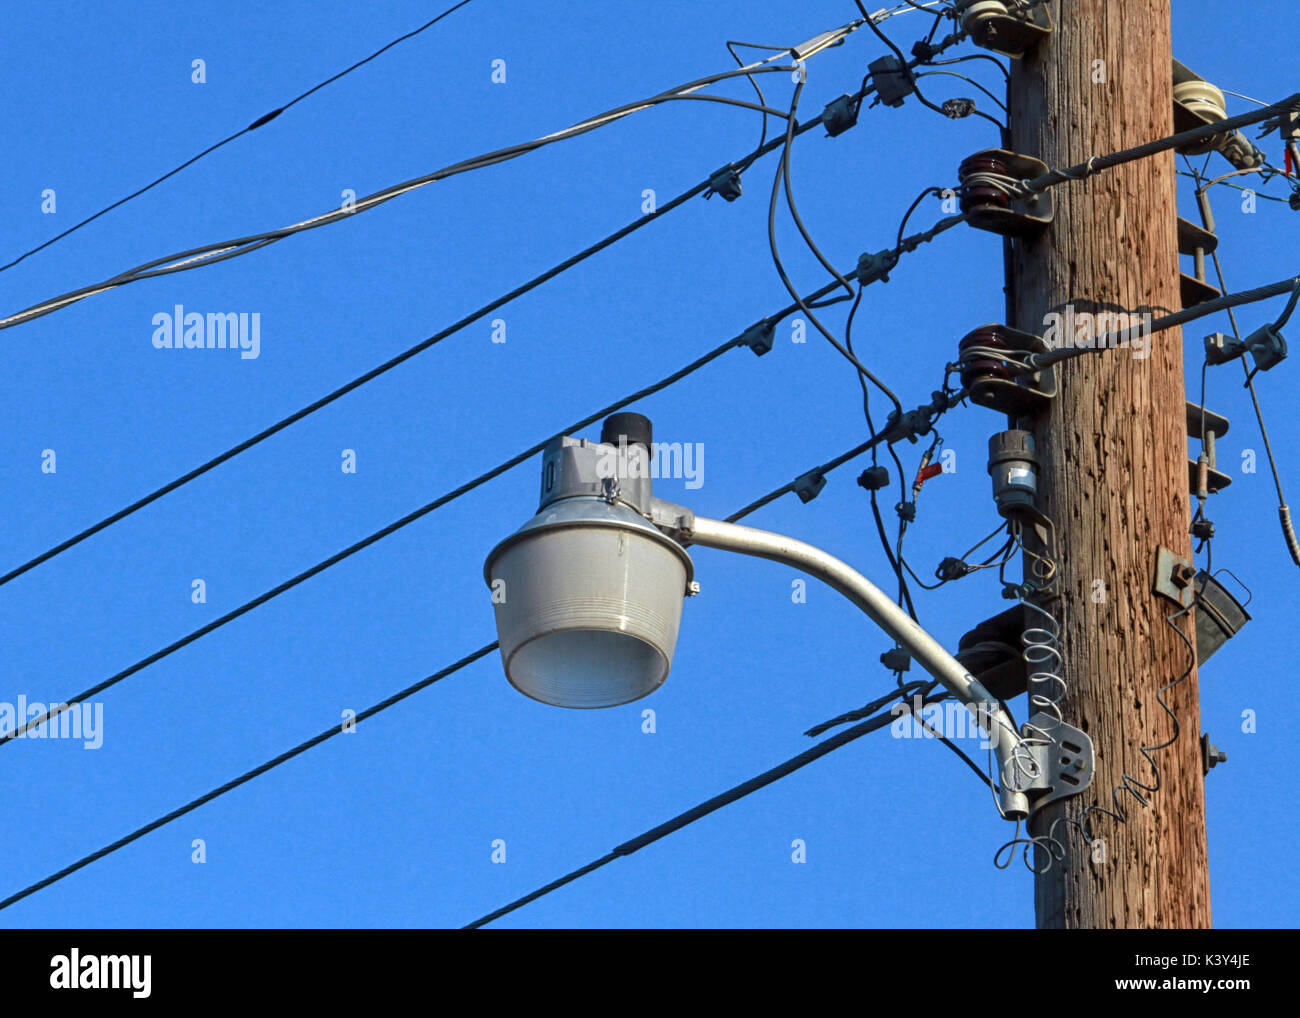 Wooden Street Lamp Post Stock Photos Wiring A An Unlit On Wood Pole With Telephone Wires Stands Out Against Blue